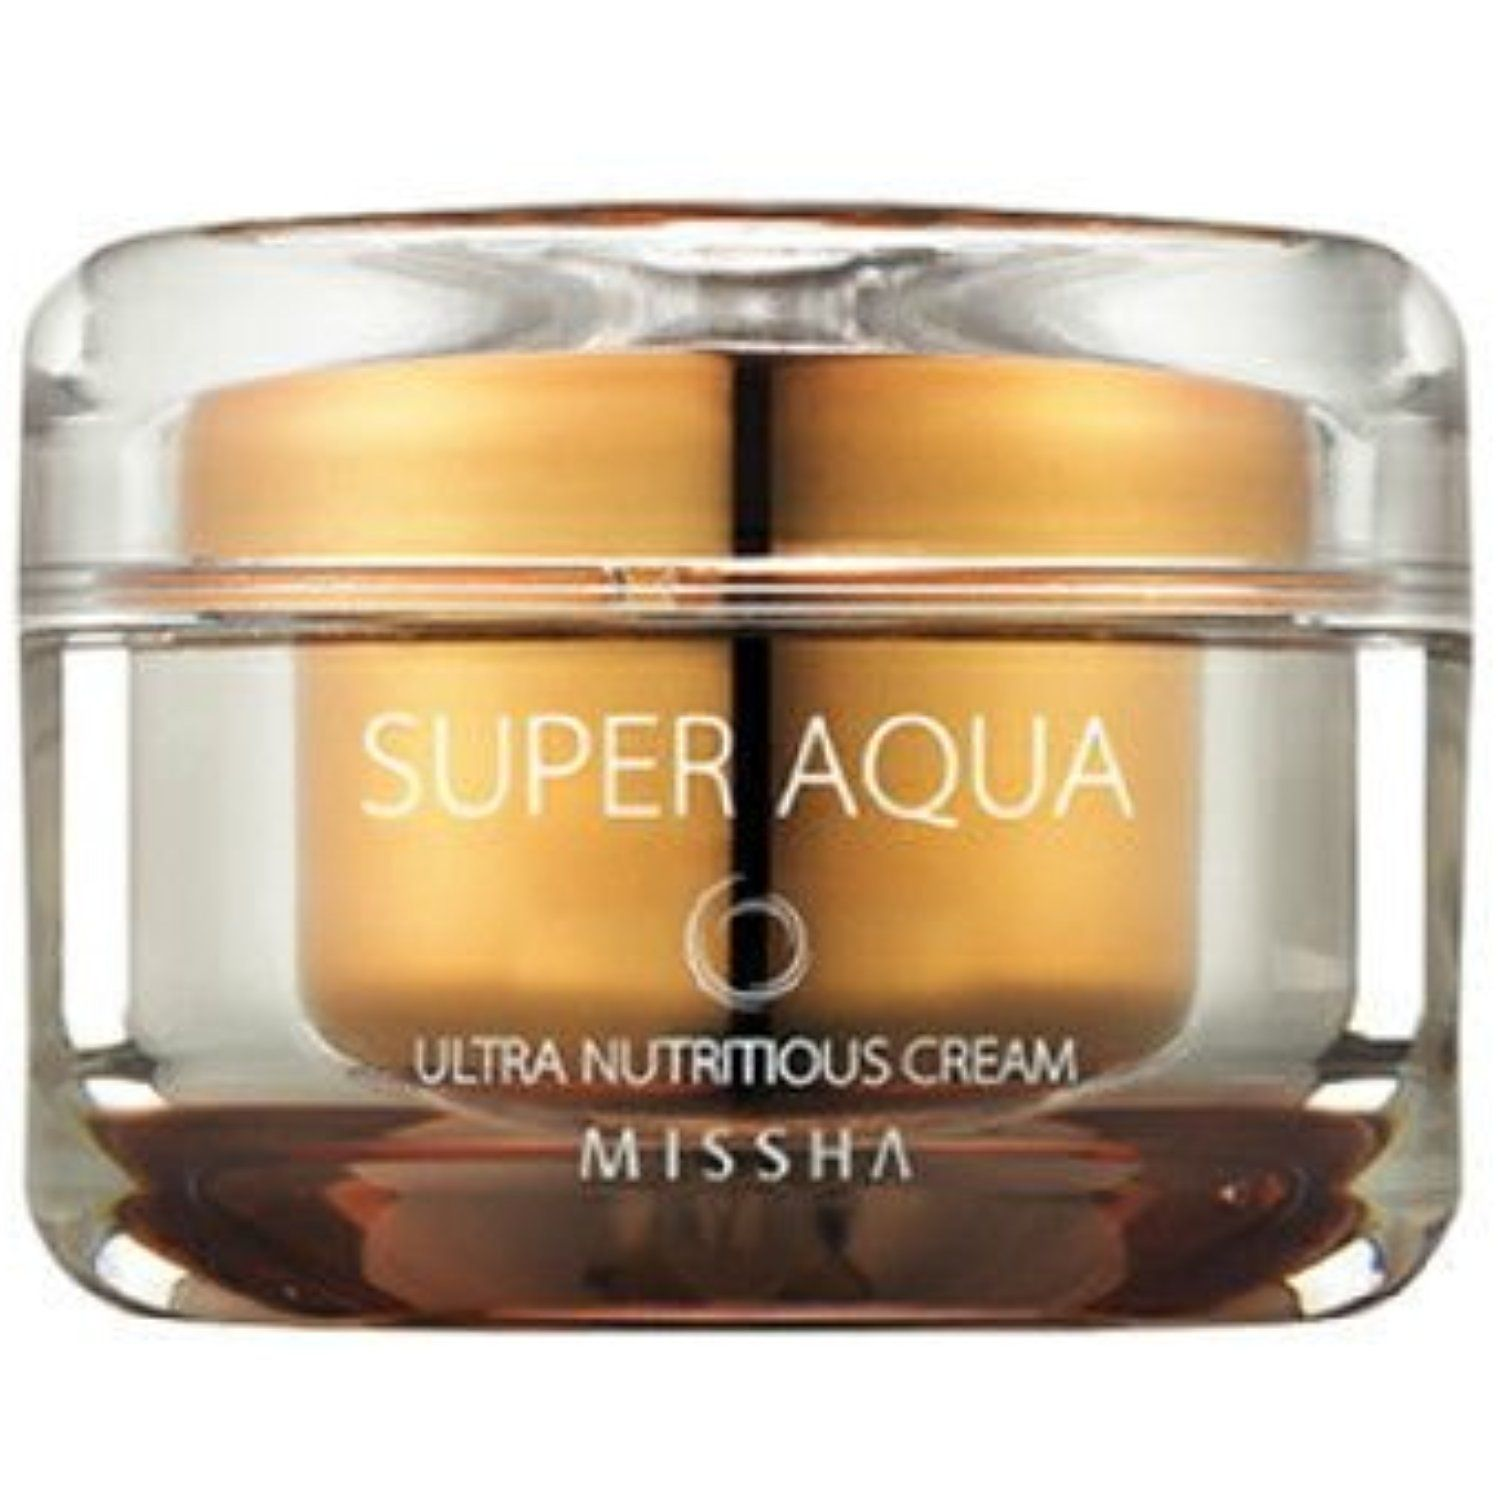 Missha Super Aqua ULTRA Nutritious Cream 47ml Yosoo 2 Colors Electric Facial Skin Pore Cleaner Acne Nose Blackhead Suction Remover Beauty Machine, Pore Suction, Blackhead Suction